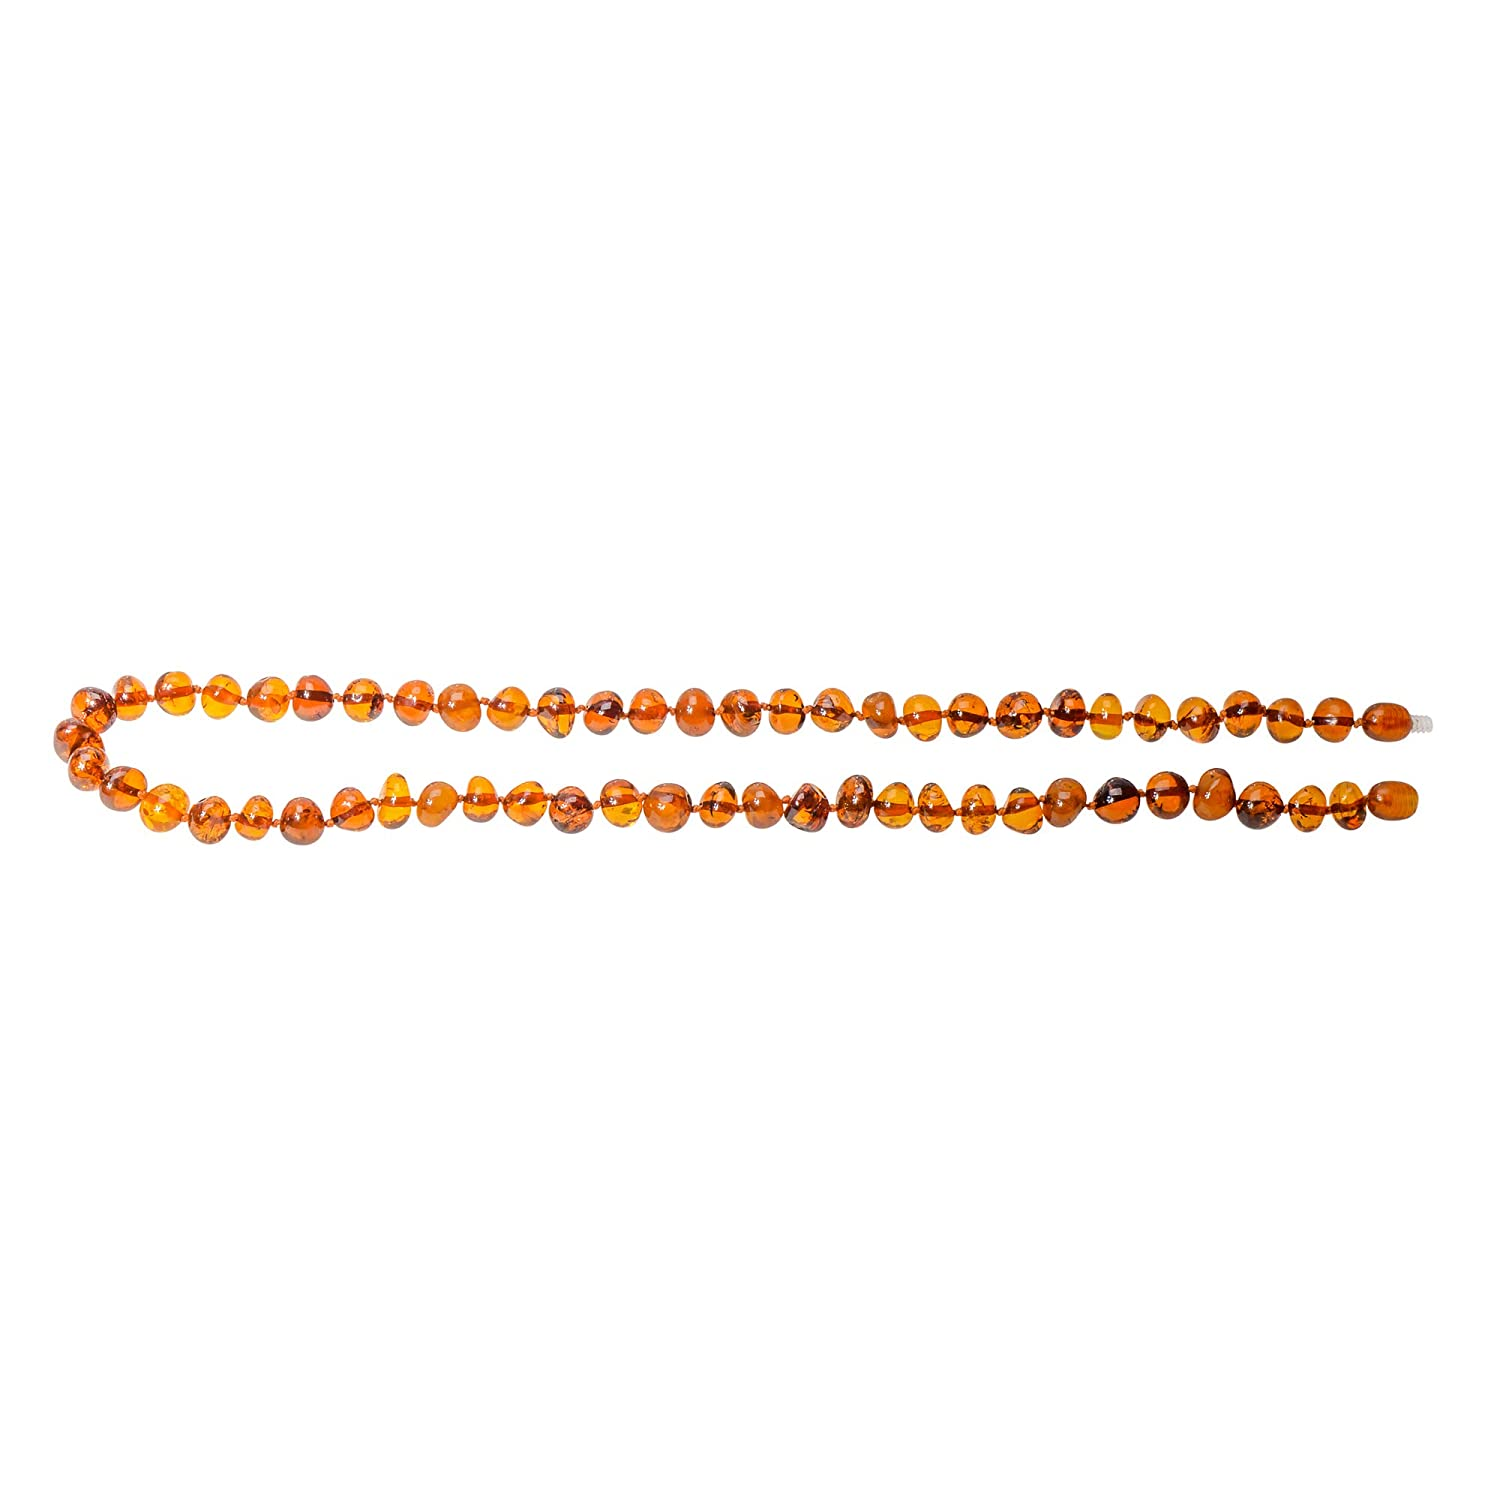 Knotted Between Beads Cognac Color Certified Amber Natural Pain Relief Adult Baltic Amber Necklace